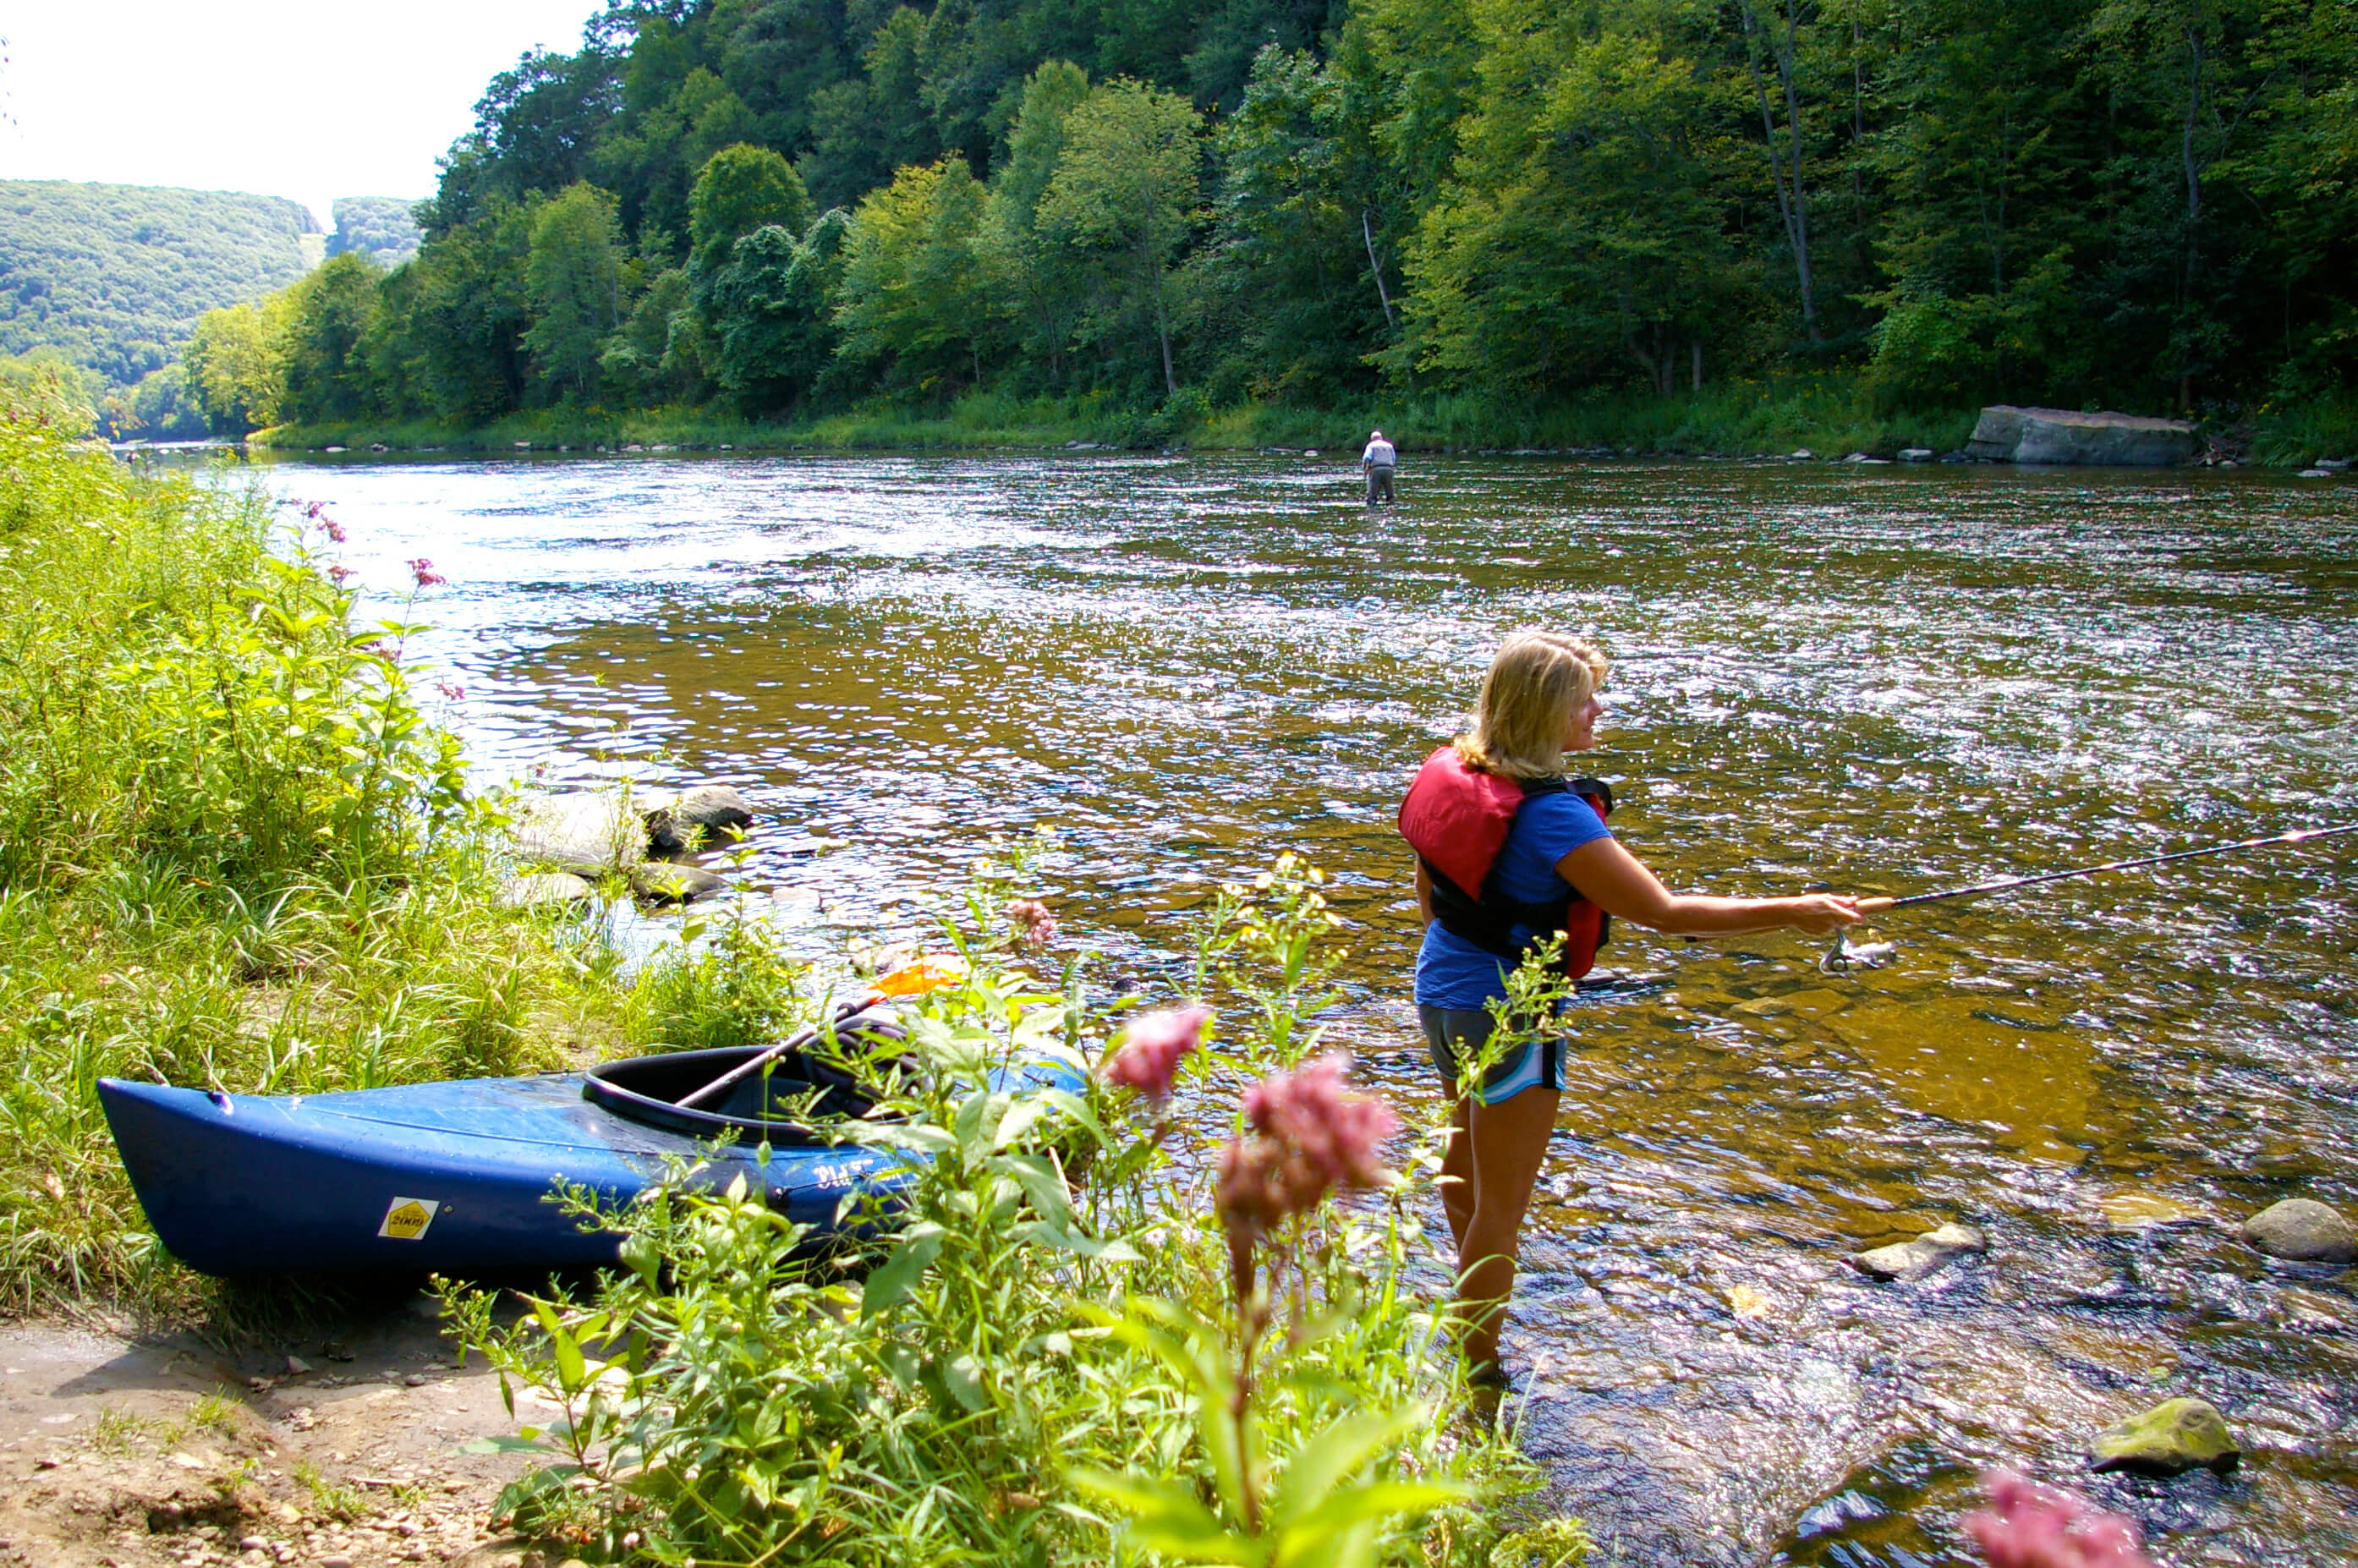 Fishing license fee increases proposed everybodyadventures for Pa fishing license prices